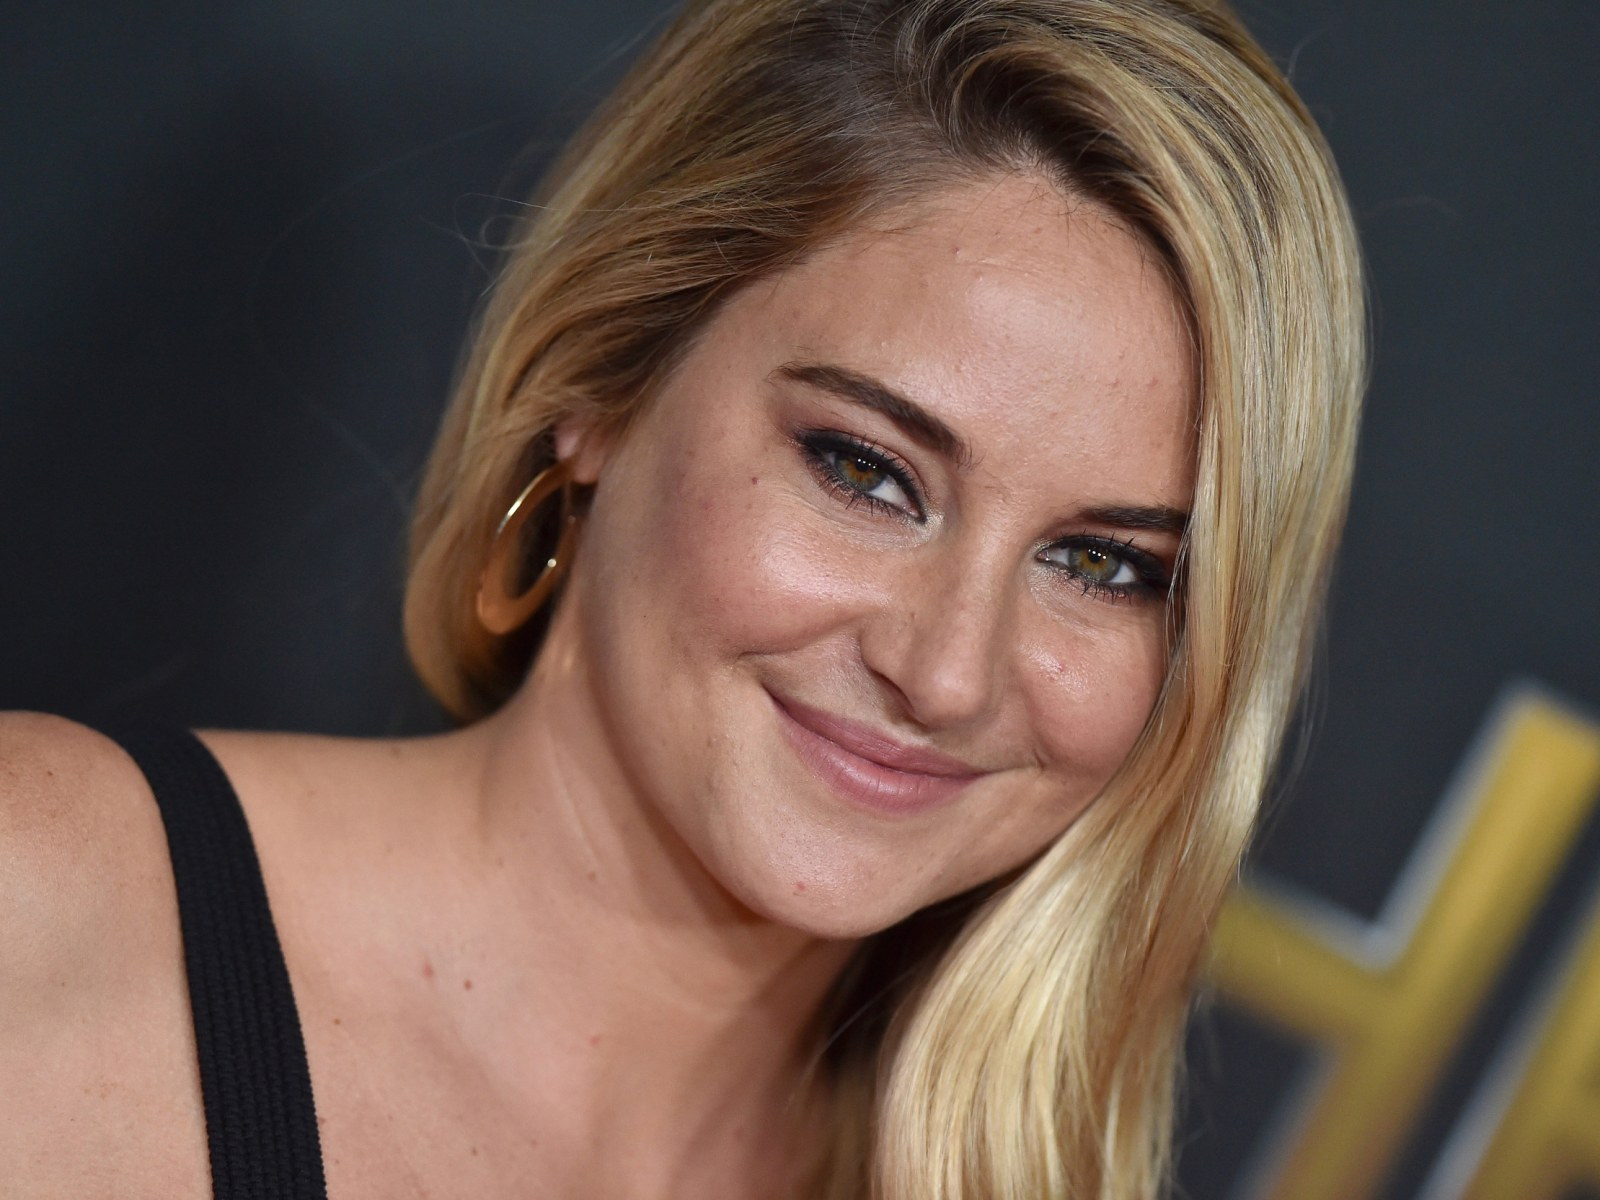 Where Did The Rumors About Aaron Rodgers And Shailene Woodley Start